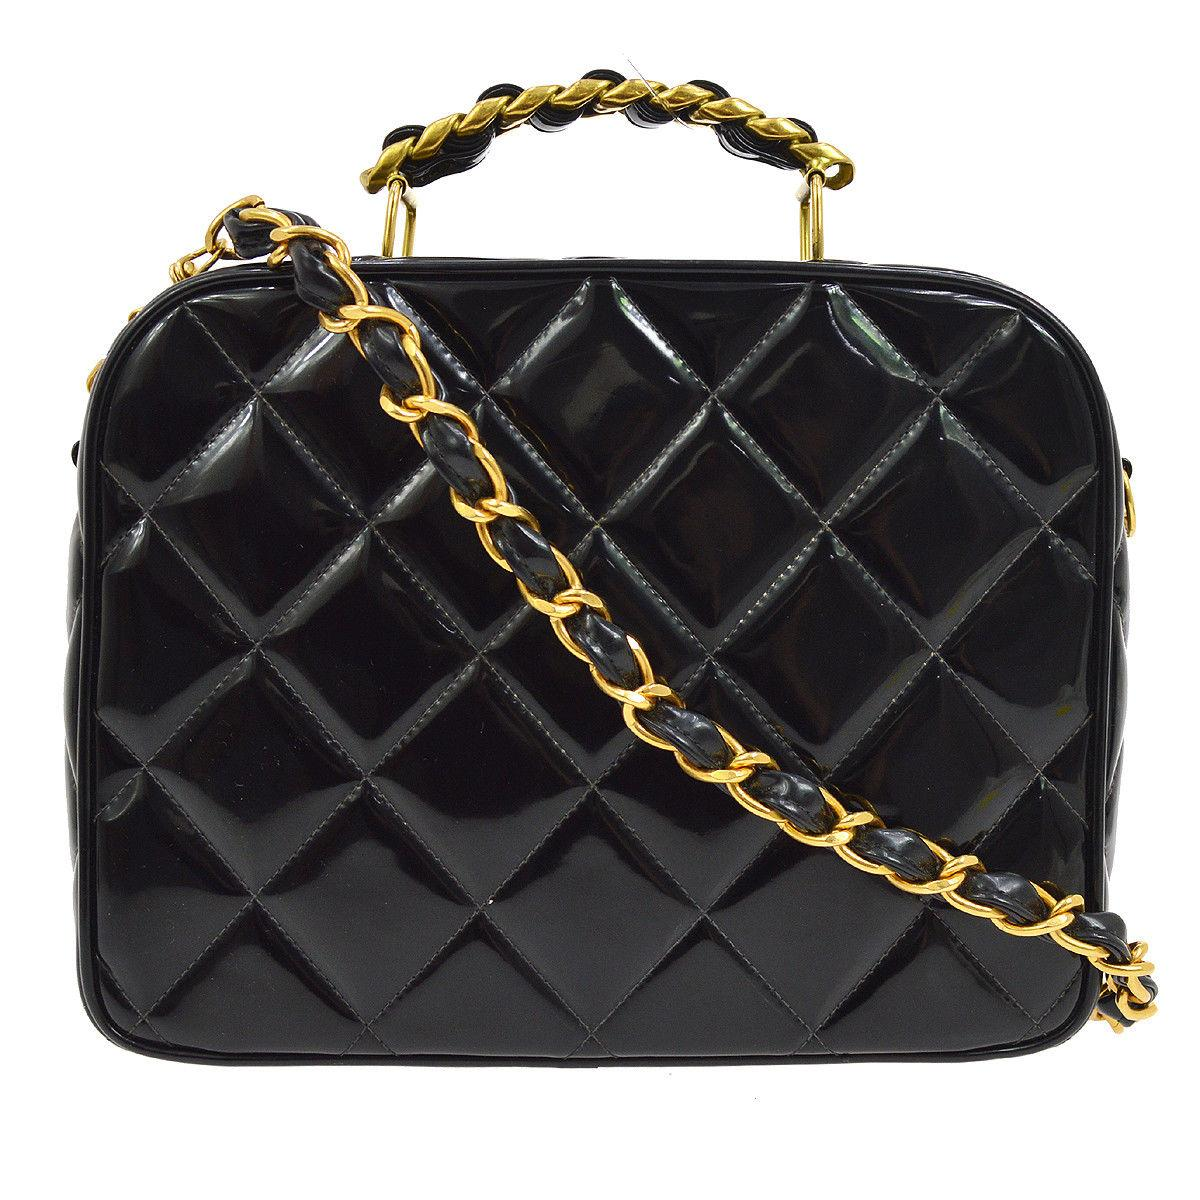 6cddd8d35b0cd1 Vintage Chanel Luggage and Travel Bags - 67 For Sale at 1stdibs